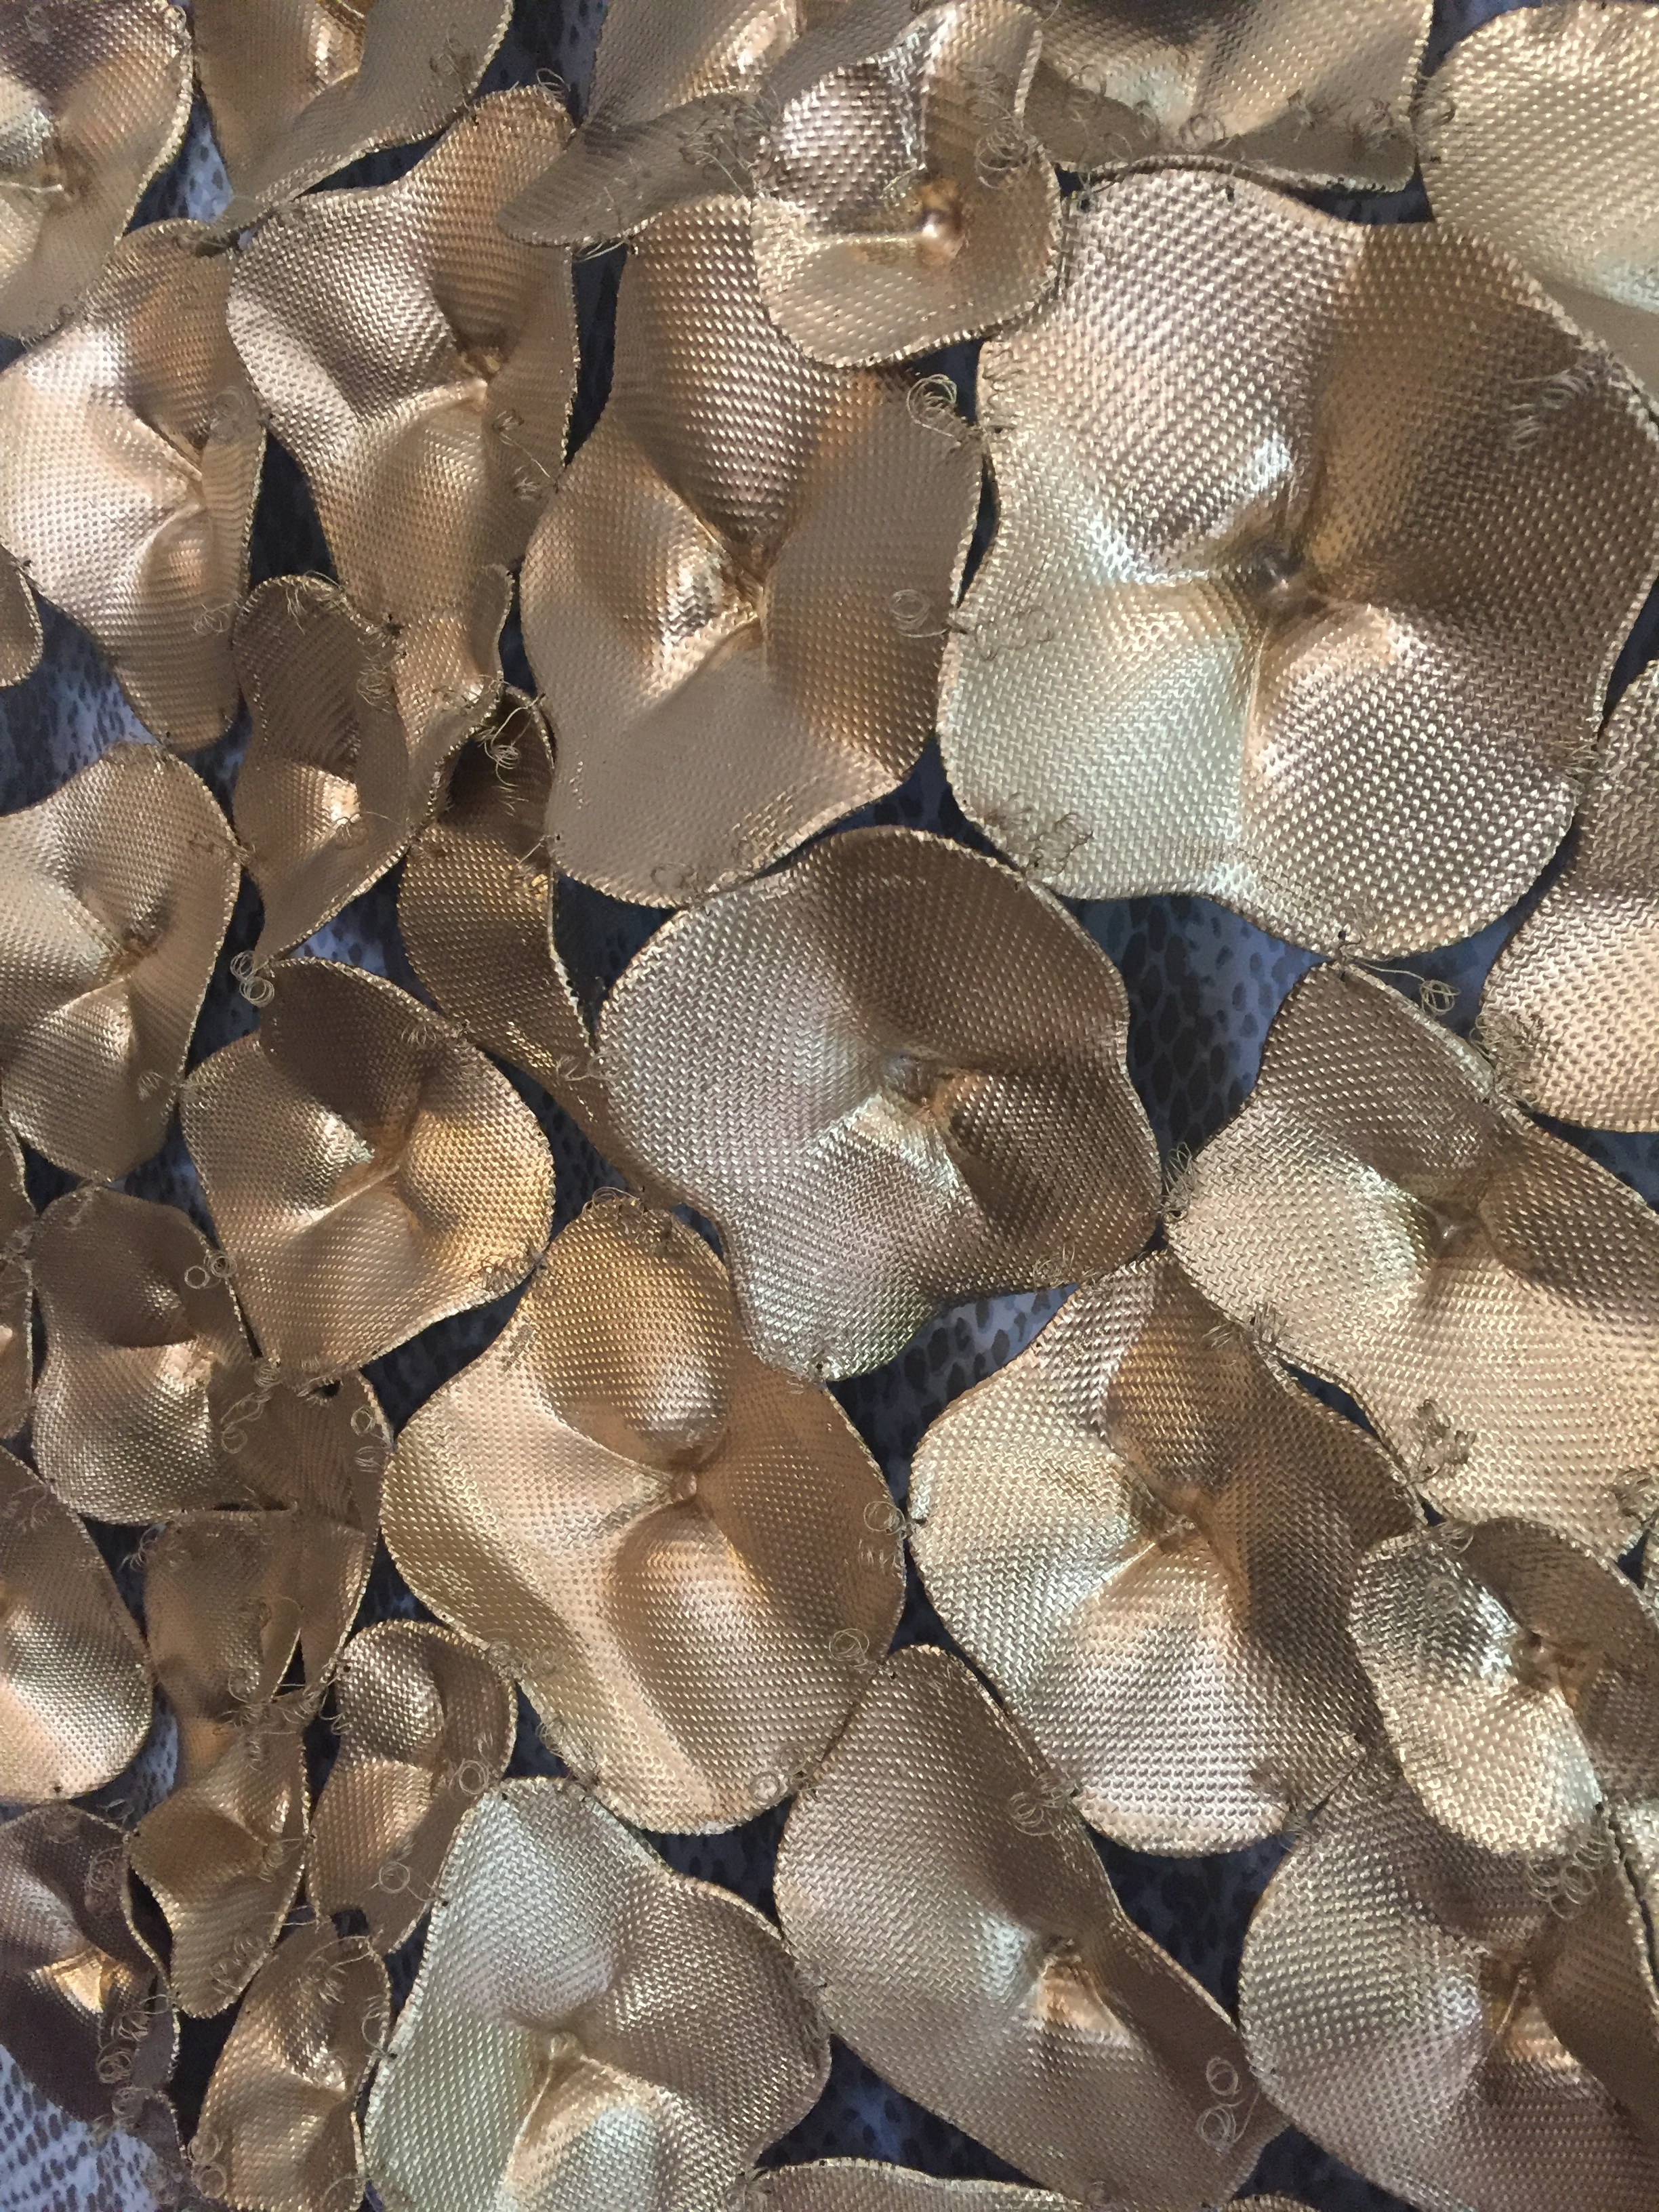 This metallic wall sculpture consists of individual handmade pieces reminiscent of flowers.